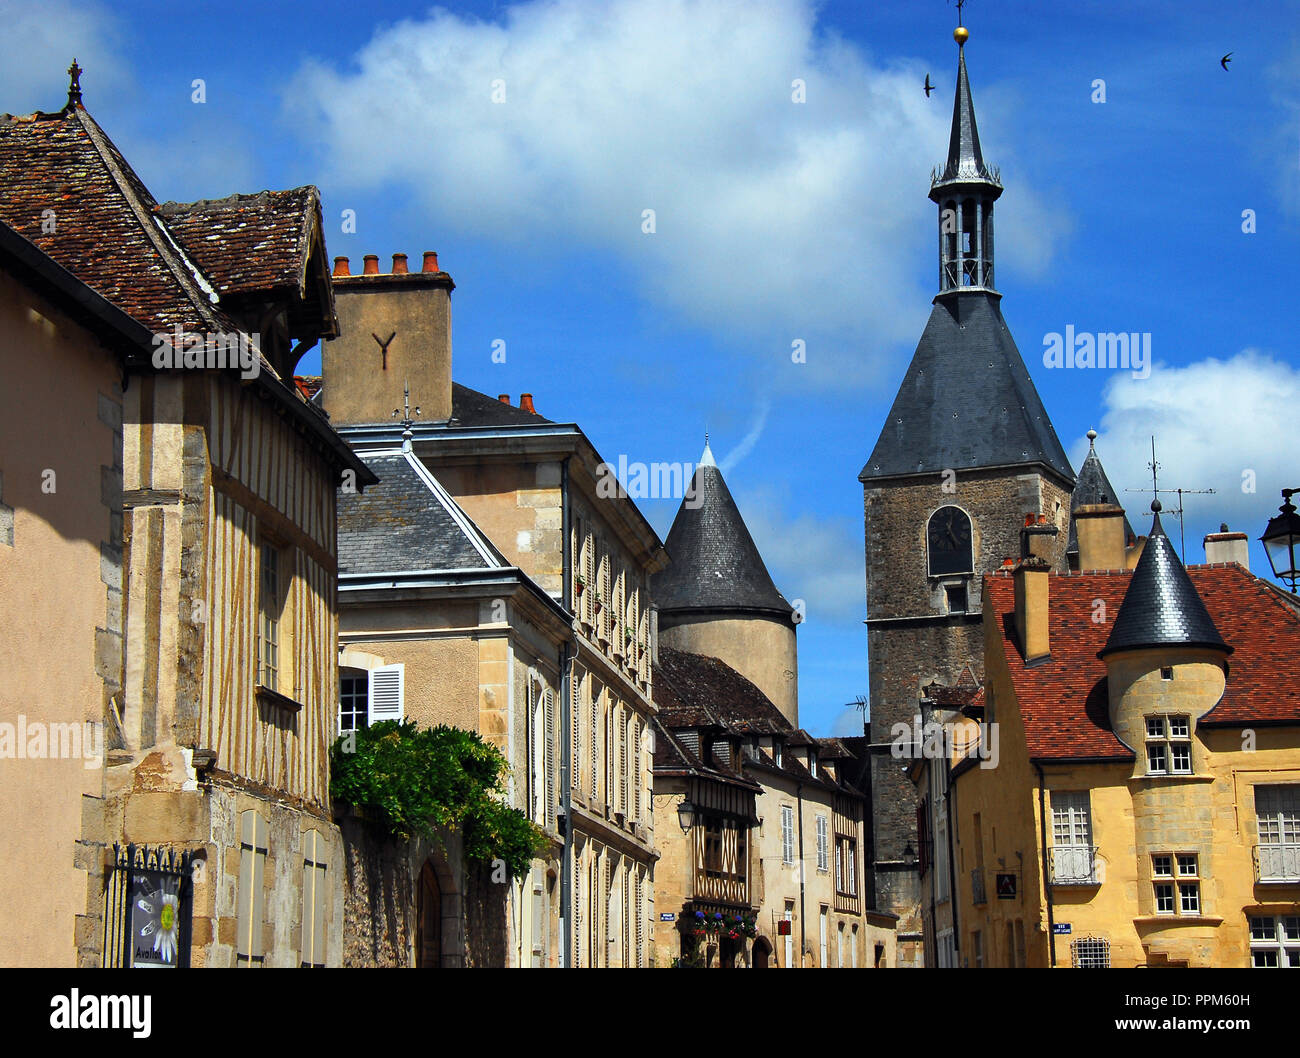 A street in the most ancient and historic part of the charming village of Medieval Avallon in Burgundy. - Stock Image